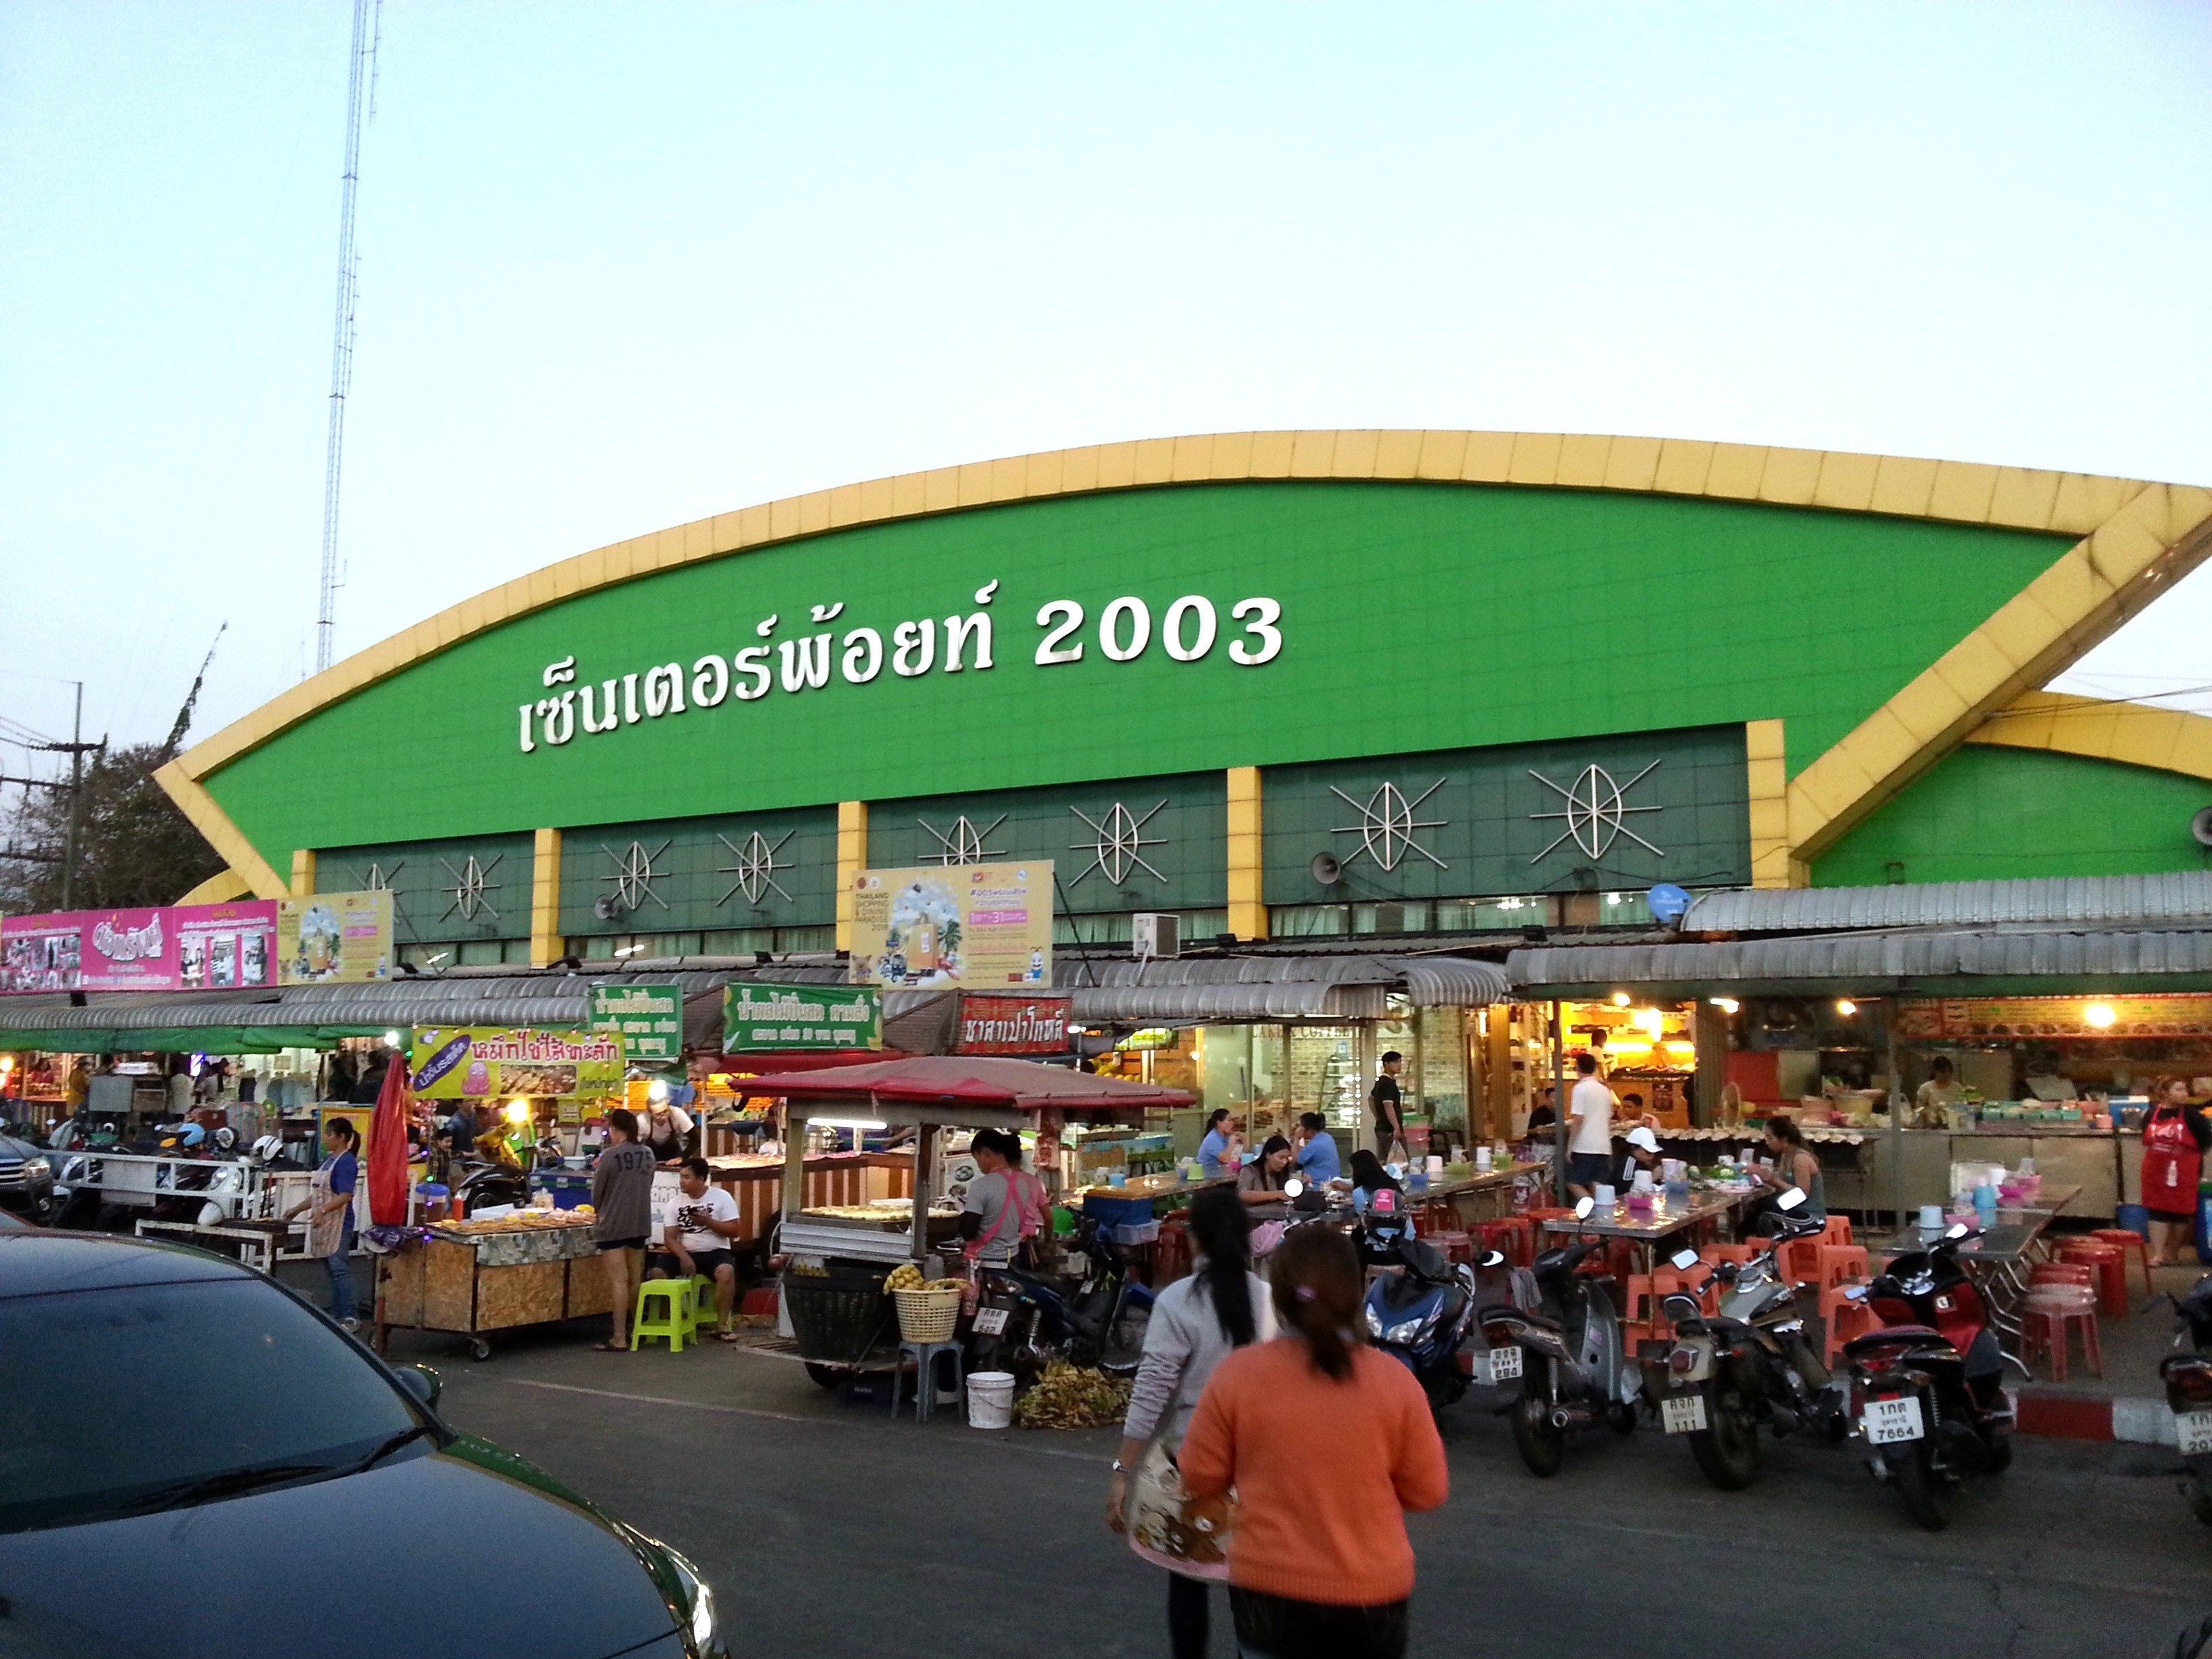 Entrance to Udon Thani Night Market